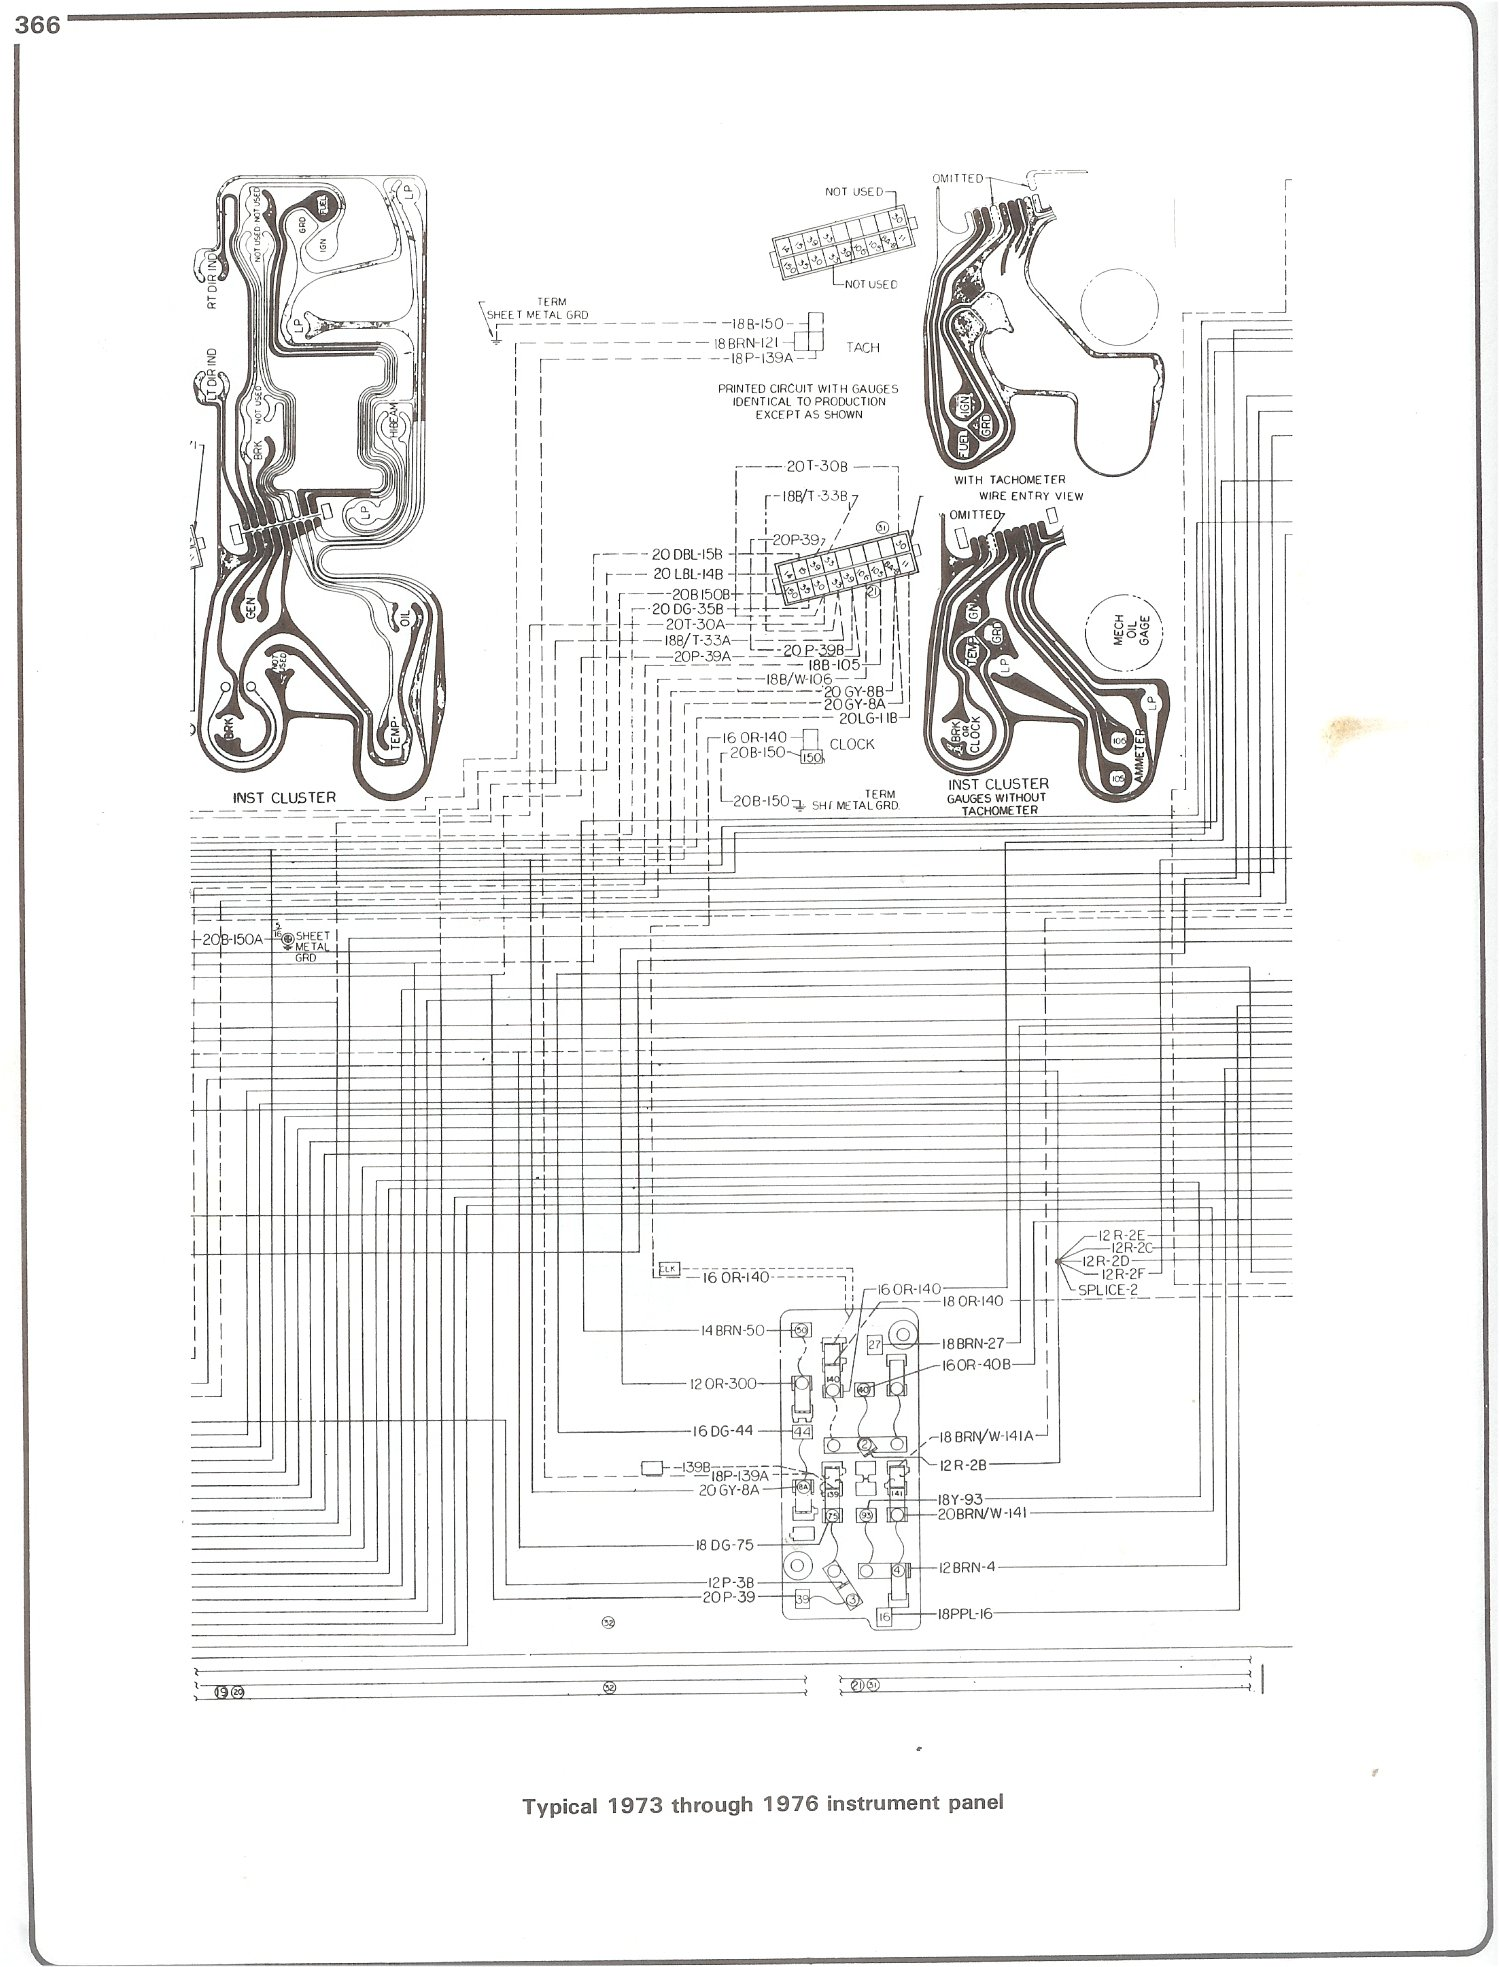 Complete 73-87 Wiring Diagrams on chevy radio wire colors, chevy silverado wiring harness, 1994 chevy 1500 fuse box diagram, chevy 1500 wiring diagram, 2008 chevy equinox wiring diagram, chevy 350 tbi wiring-diagram, 2003 chevy silverado wiring diagram, chevy silverado water pump, chevy silverado reverse light wiring diagram, 2006 silverado light wiring diagram, chevy silverado dash lights, 2001 chevy silverado wiring diagram, chevy silverado headlight wiring diagram, 2013 chevy impala wiring diagram, chevy silverado tail light wiring diagram, 99 silverado wiring diagram, 93 chevy c1500 wiring diagram, silverado stereo wiring diagram, 2003 cavalier stereo wiring diagram, 2003 silverado instrument cluster diagram,